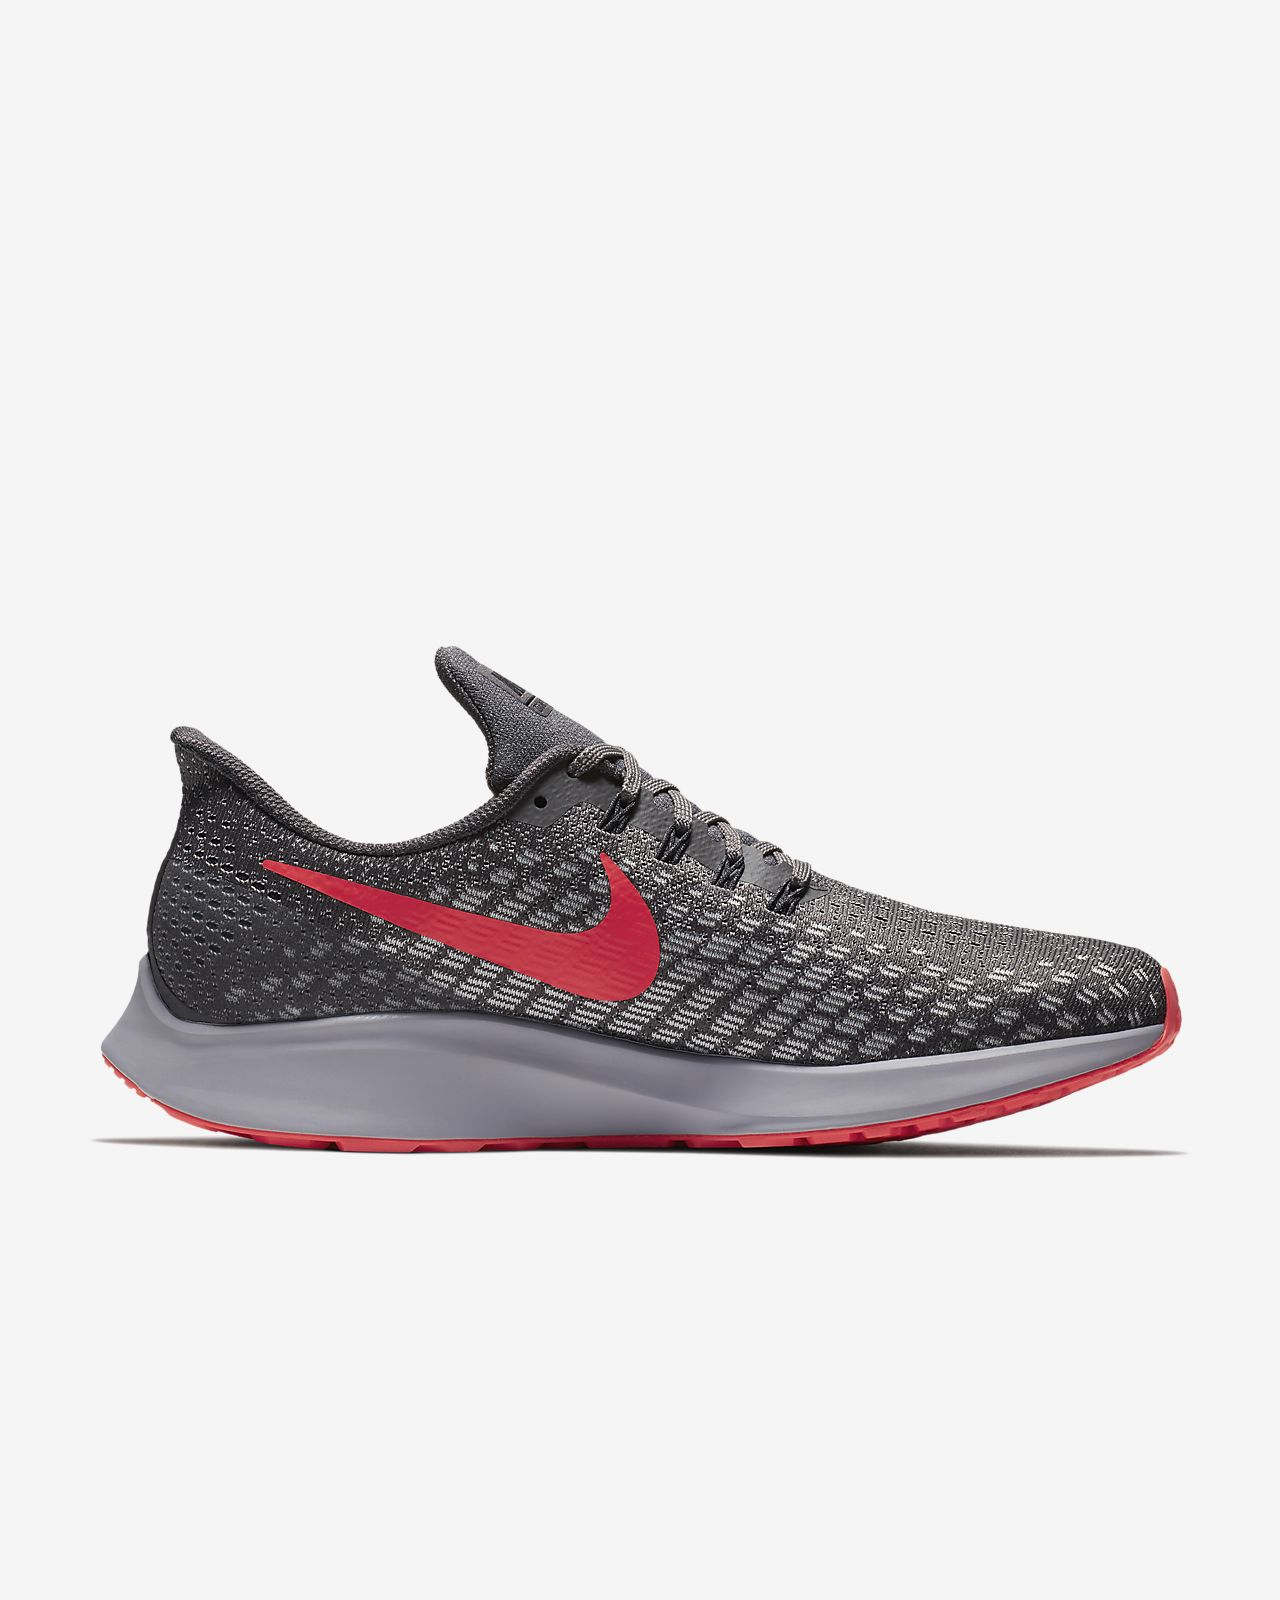 reputable site efc47 502a0 ... Nike Air Zoom Pegasus 35 Men s Running Shoe